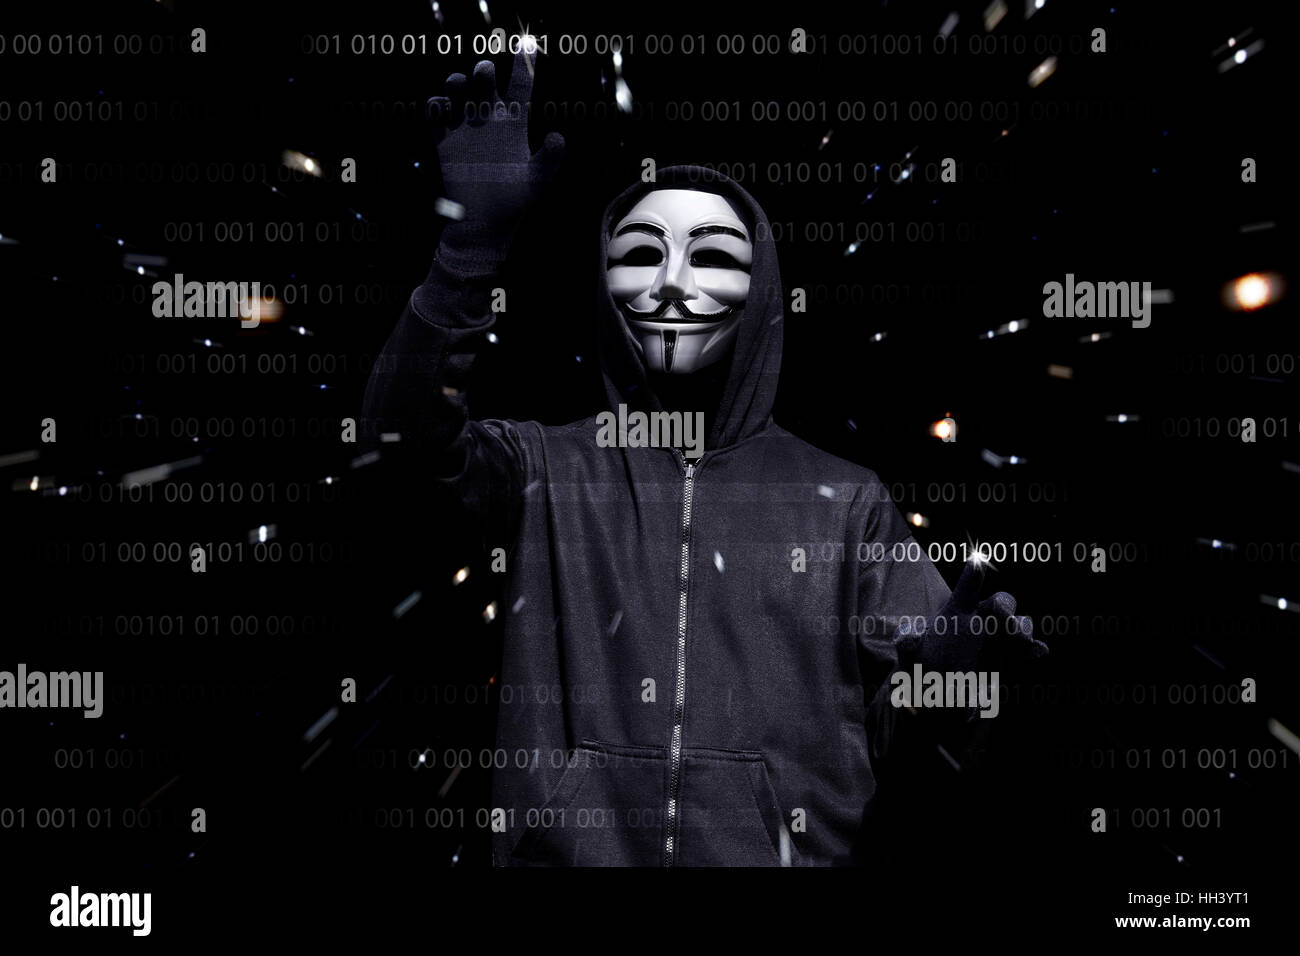 Hooded man with anonymous mask hacking binary system security code on the virtual screen - Stock Image